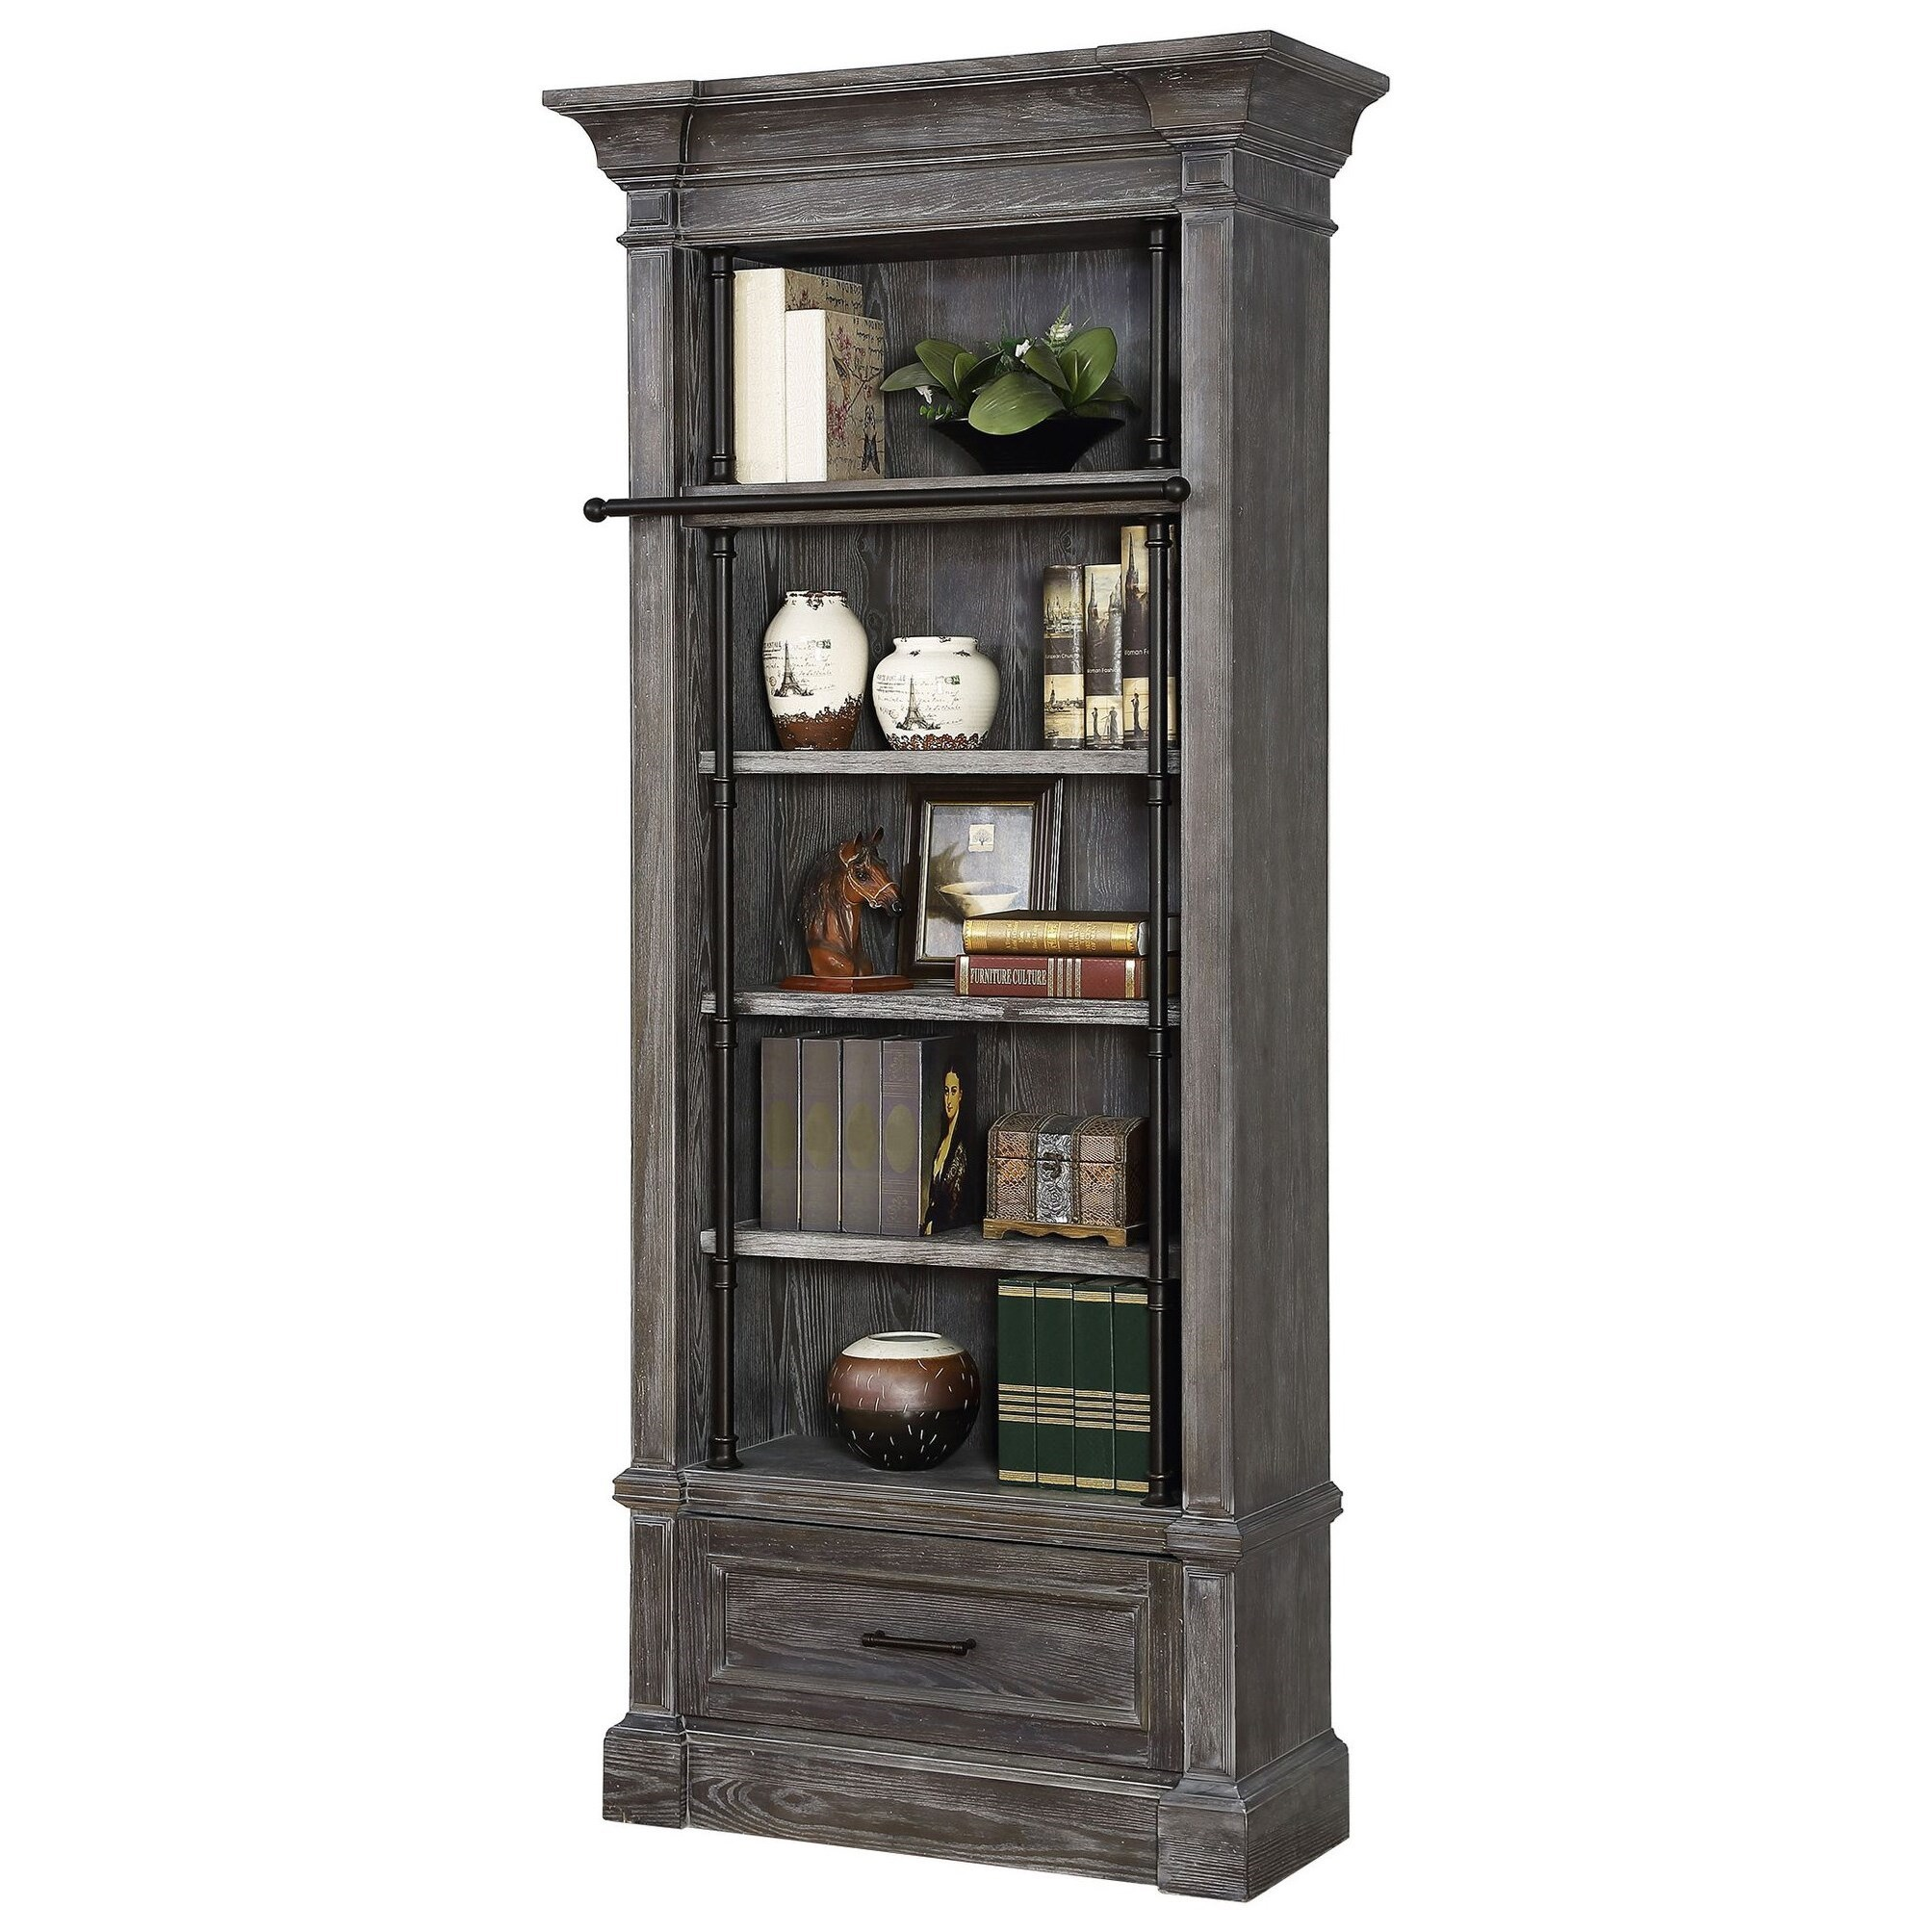 Gramercy Park Museum Bookcase by Parker House at Zak's Home